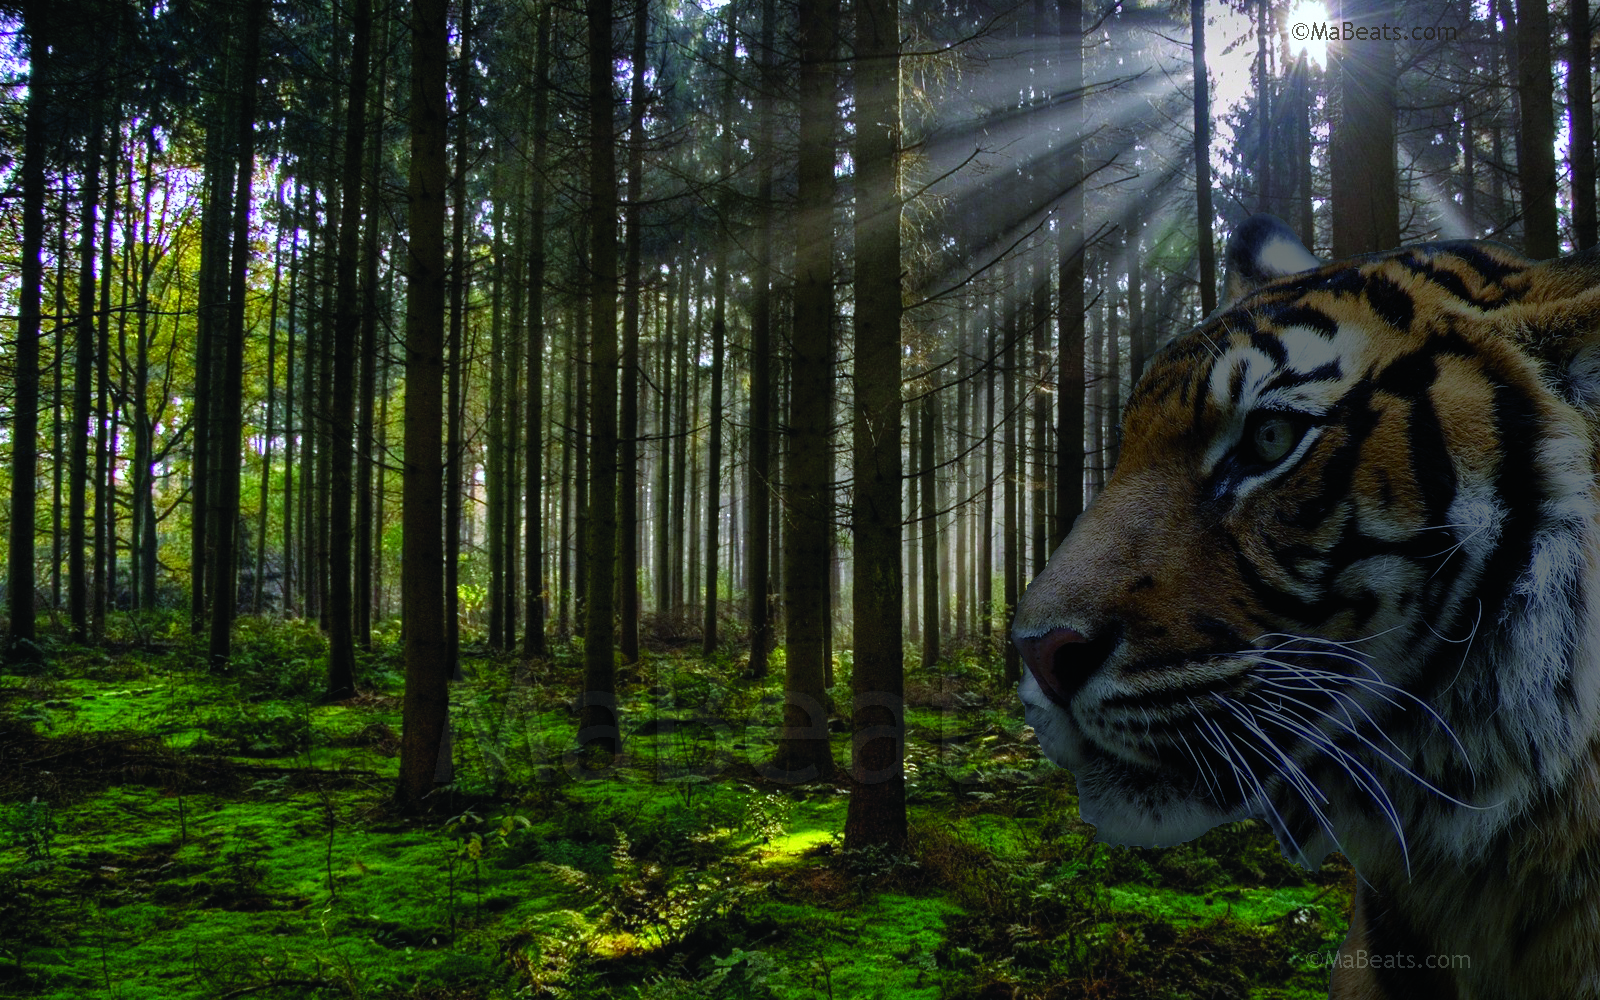 An Indian Tiger looking for shelter in the wild forest